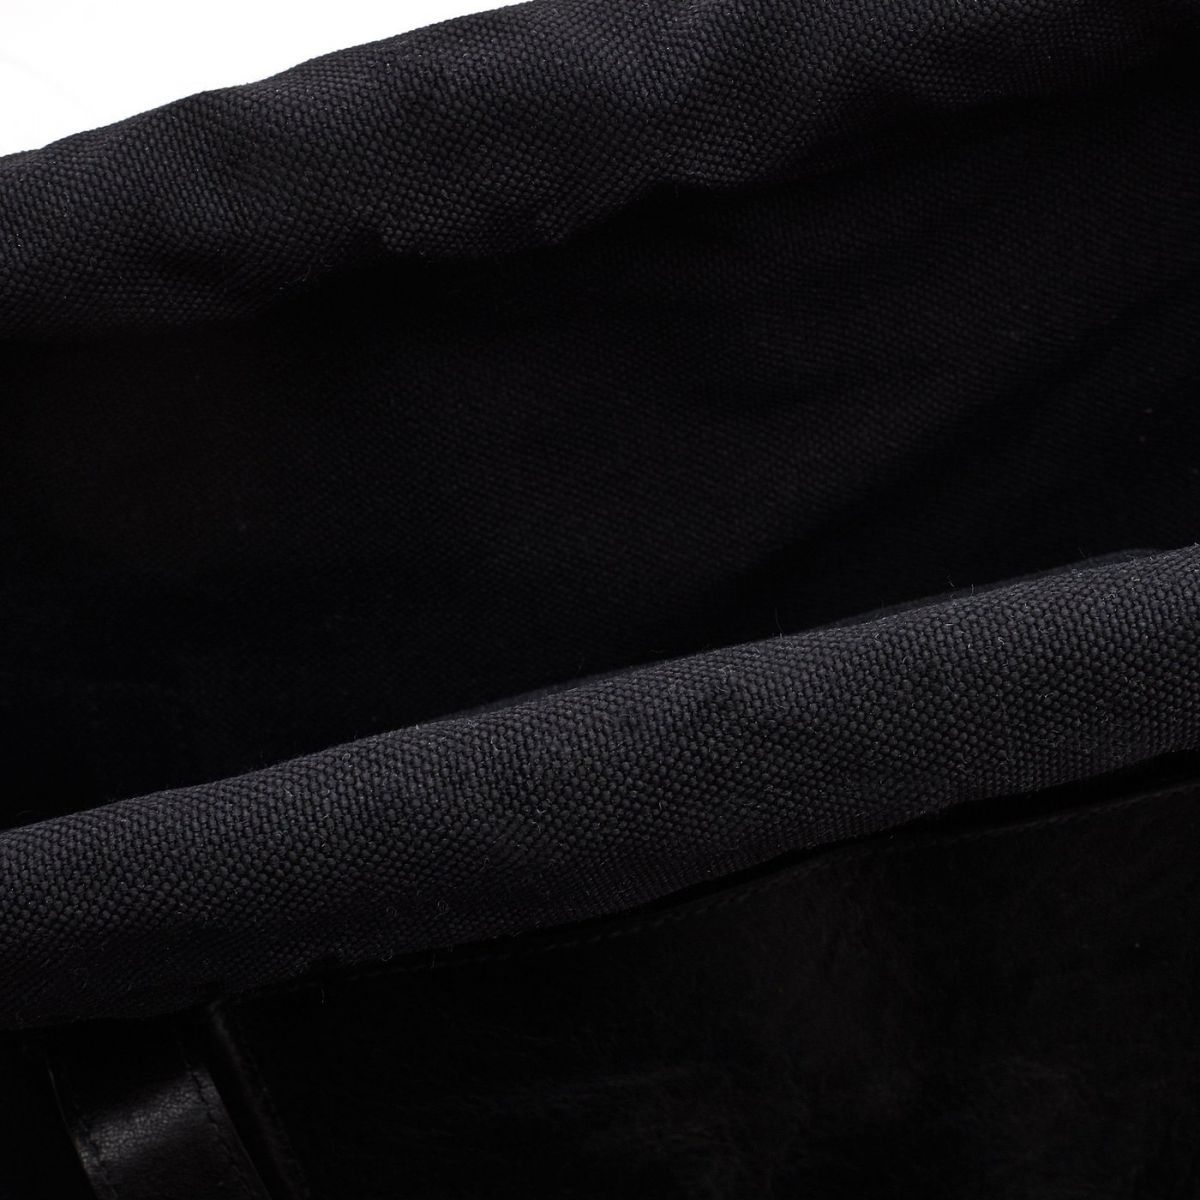 Men's Tote Bag  in Technical Fabric BTO085 color Black/Black | Details